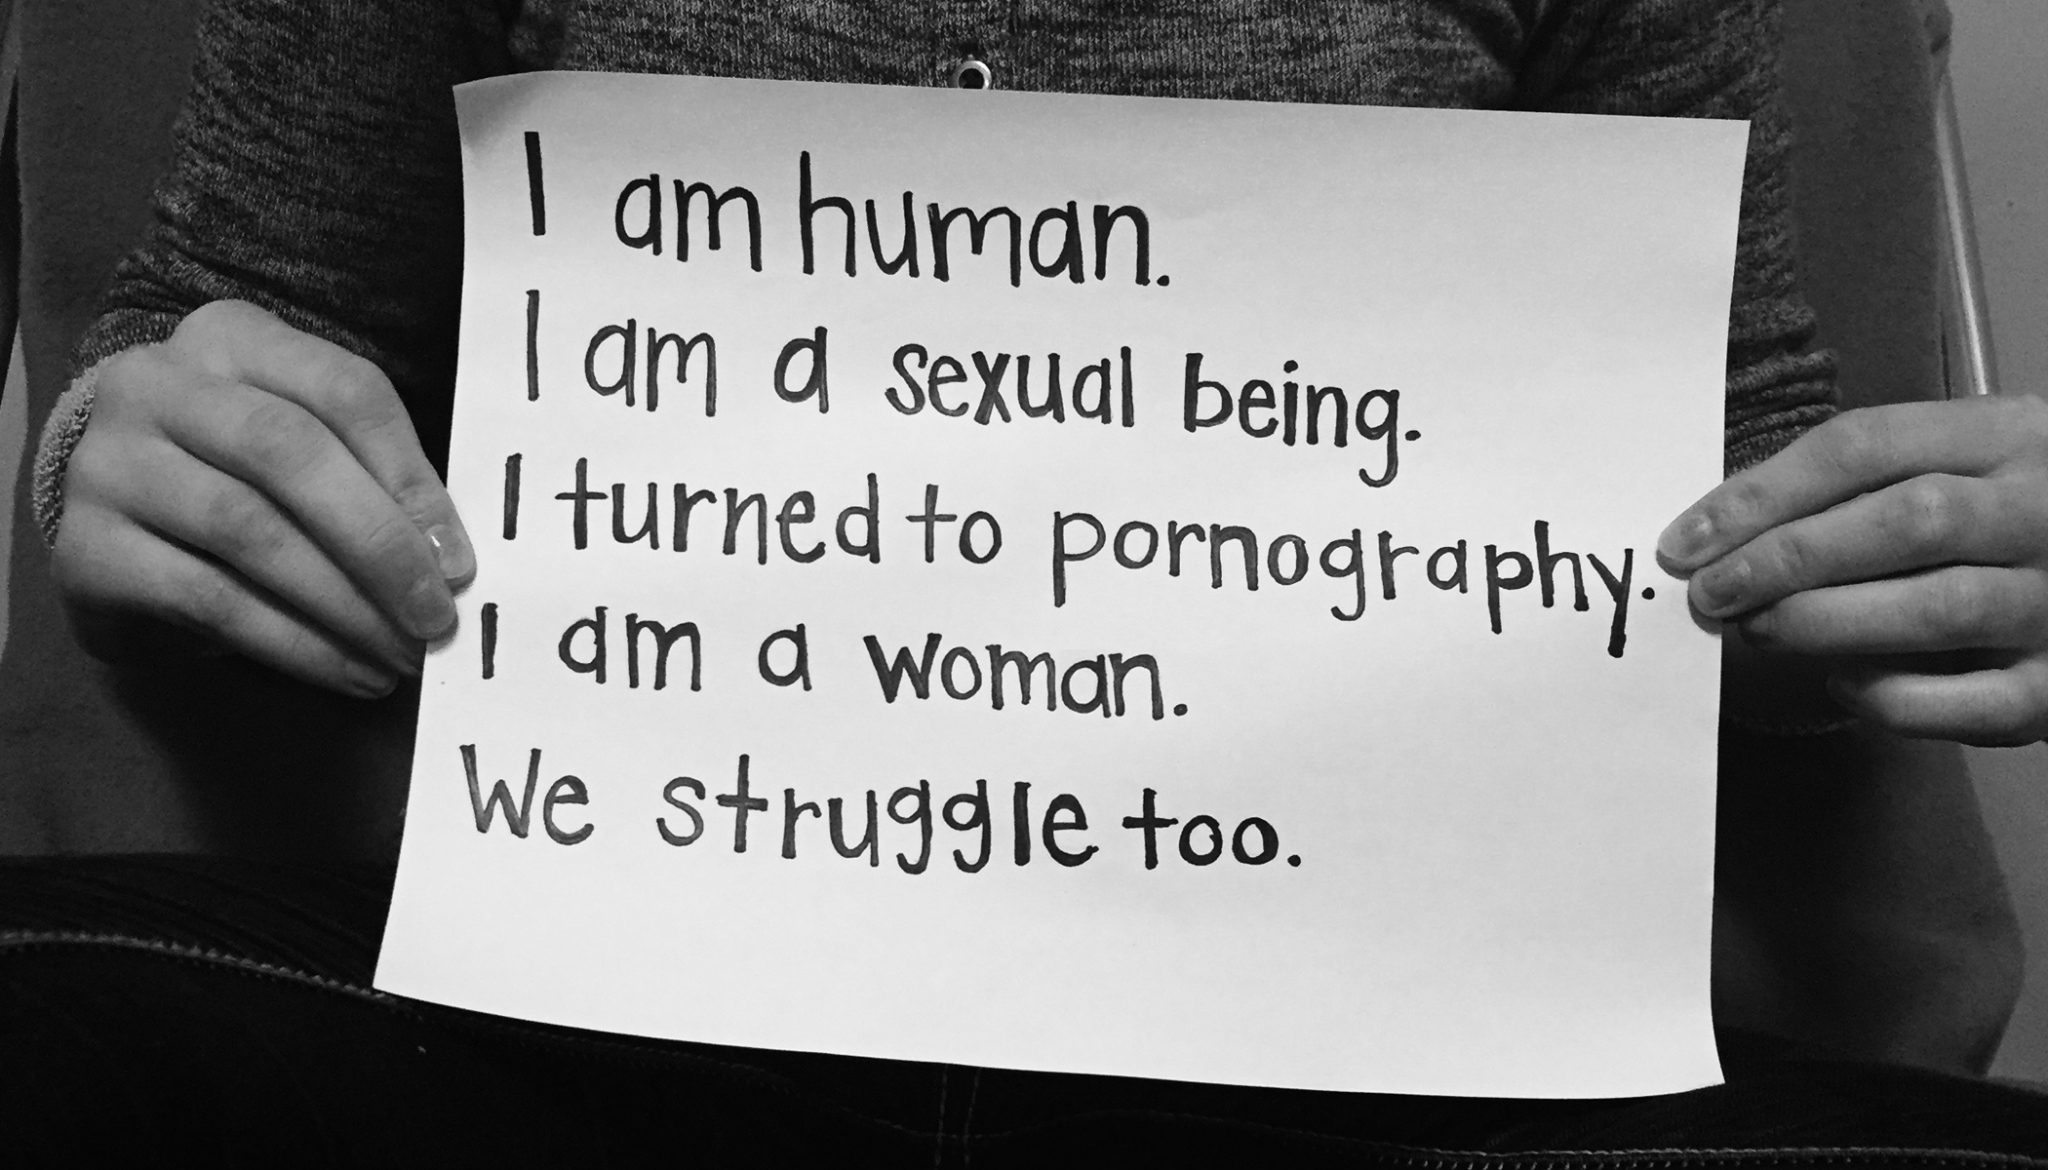 5 Women Who Struggle With Porn Share Powerful Personal Messages